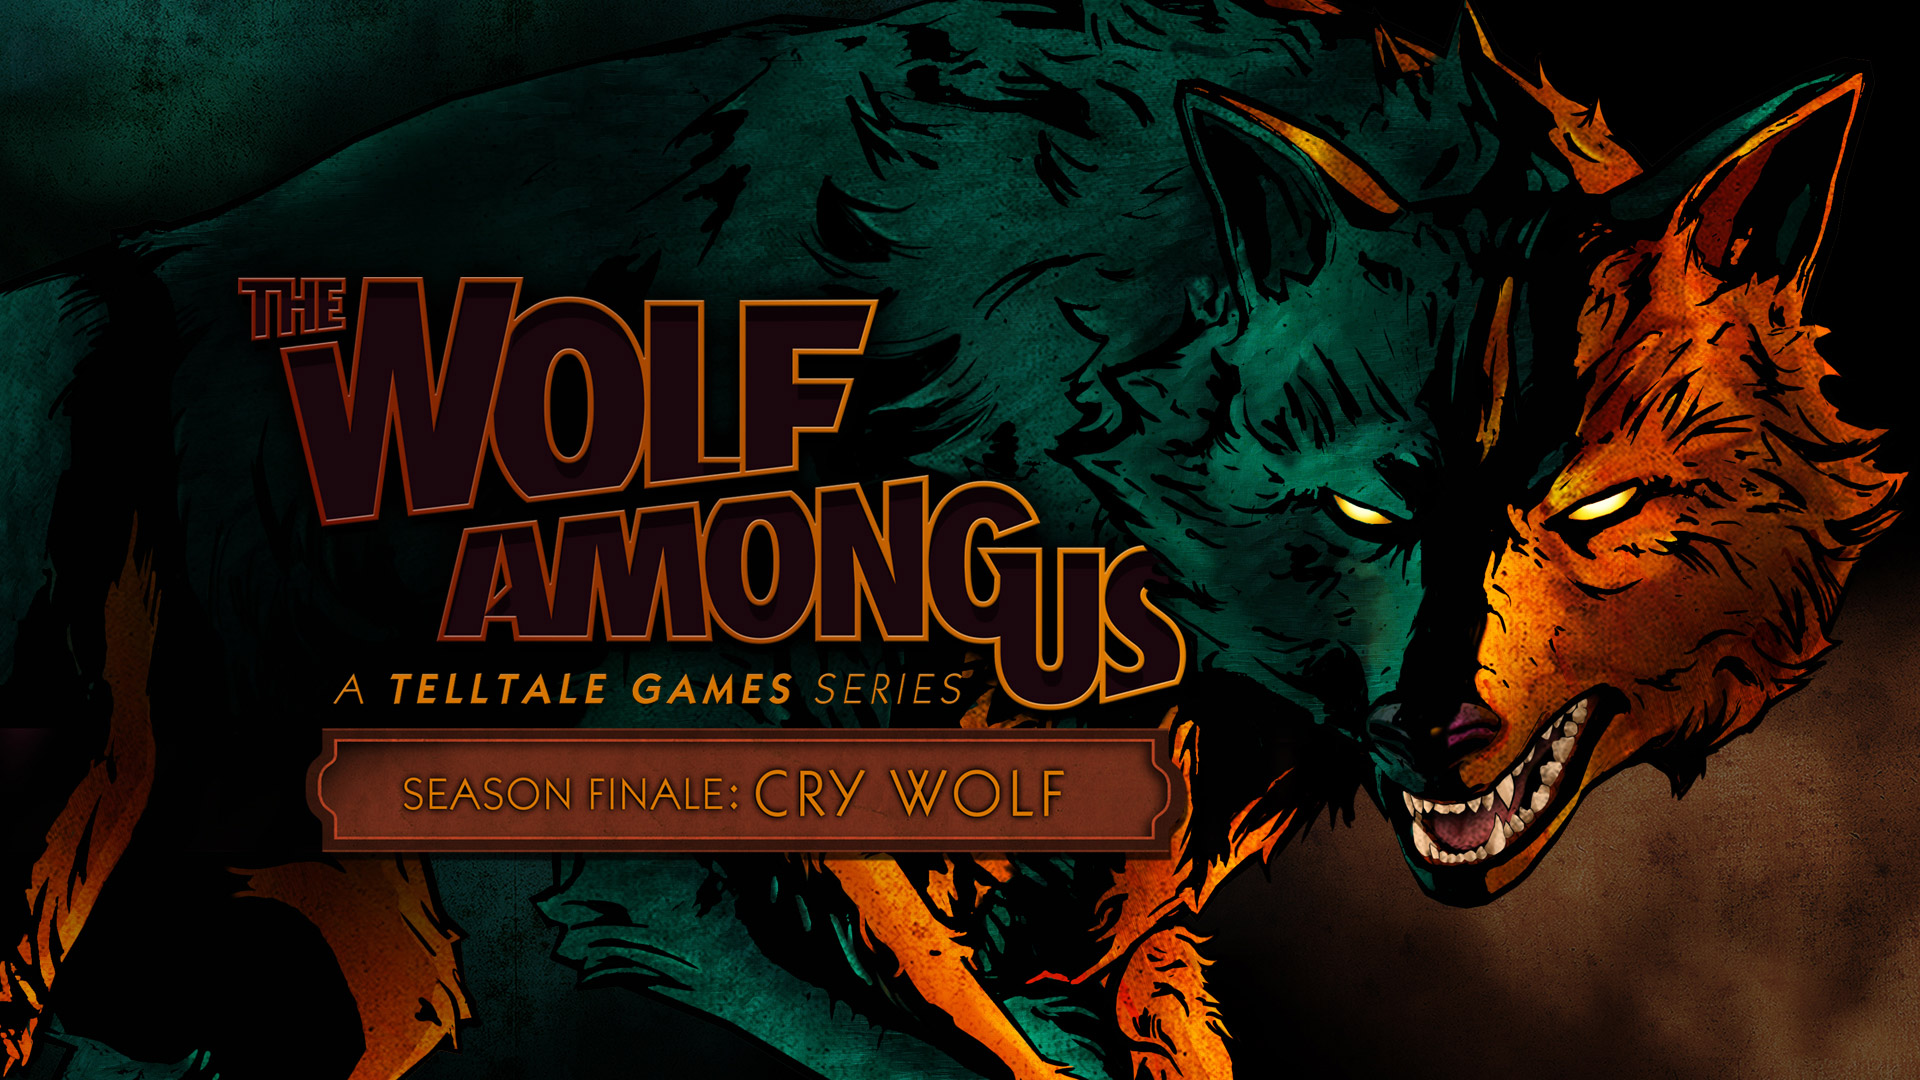 Free The Wolf Among Us Wallpaper in 1920x1080